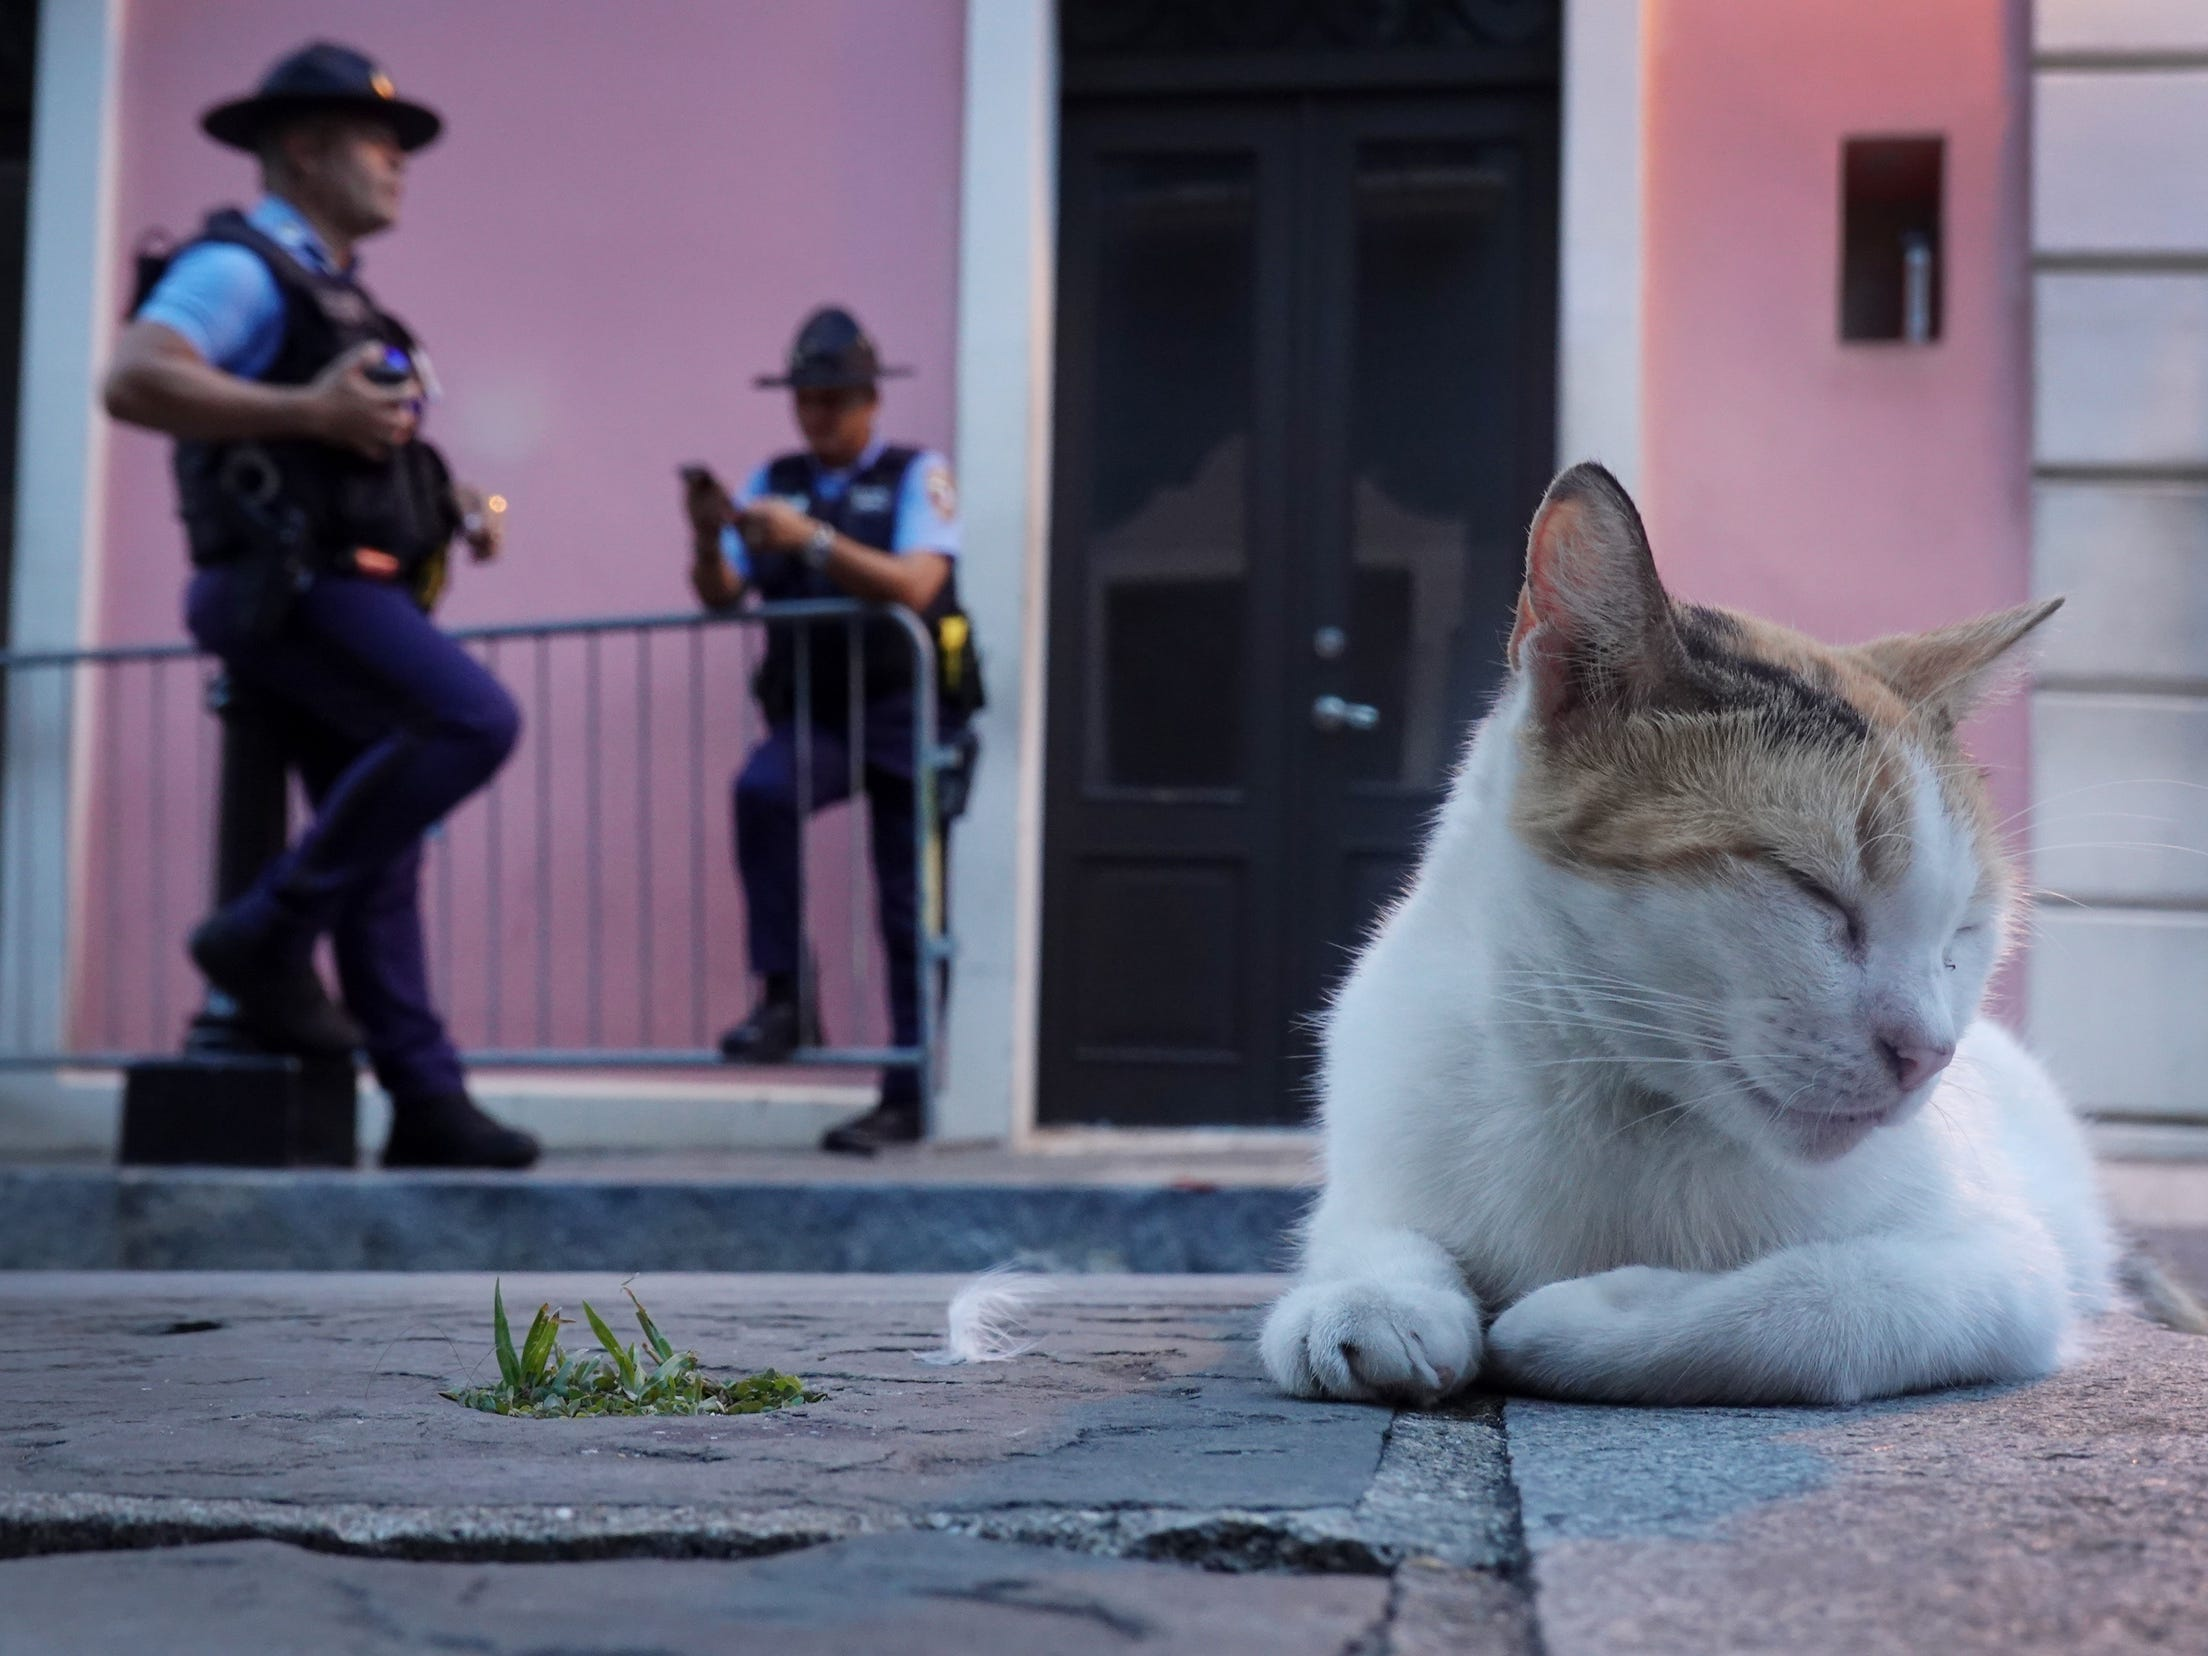 Ten months after hurricane Maria hit Puerto Rico a cat rests on a sidewalk in old San Juan.